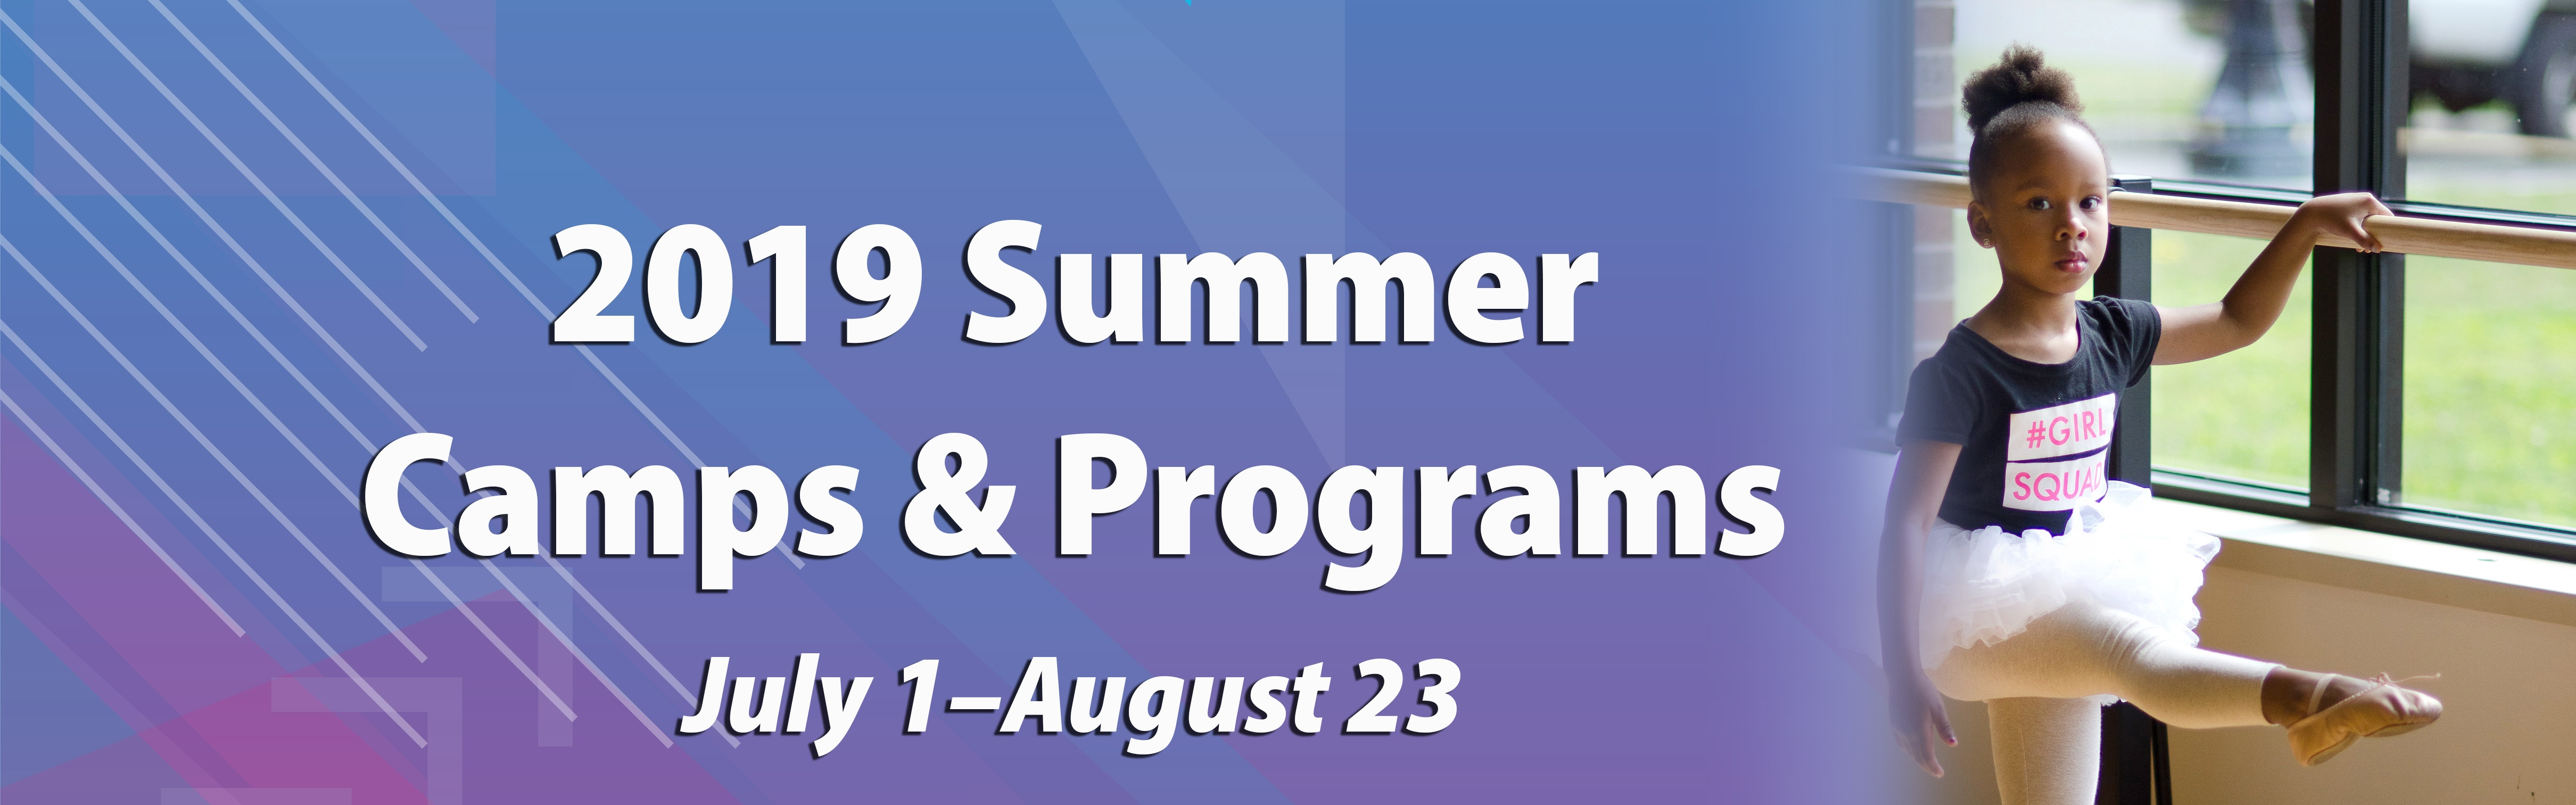 2019 Summer Camps & Programs